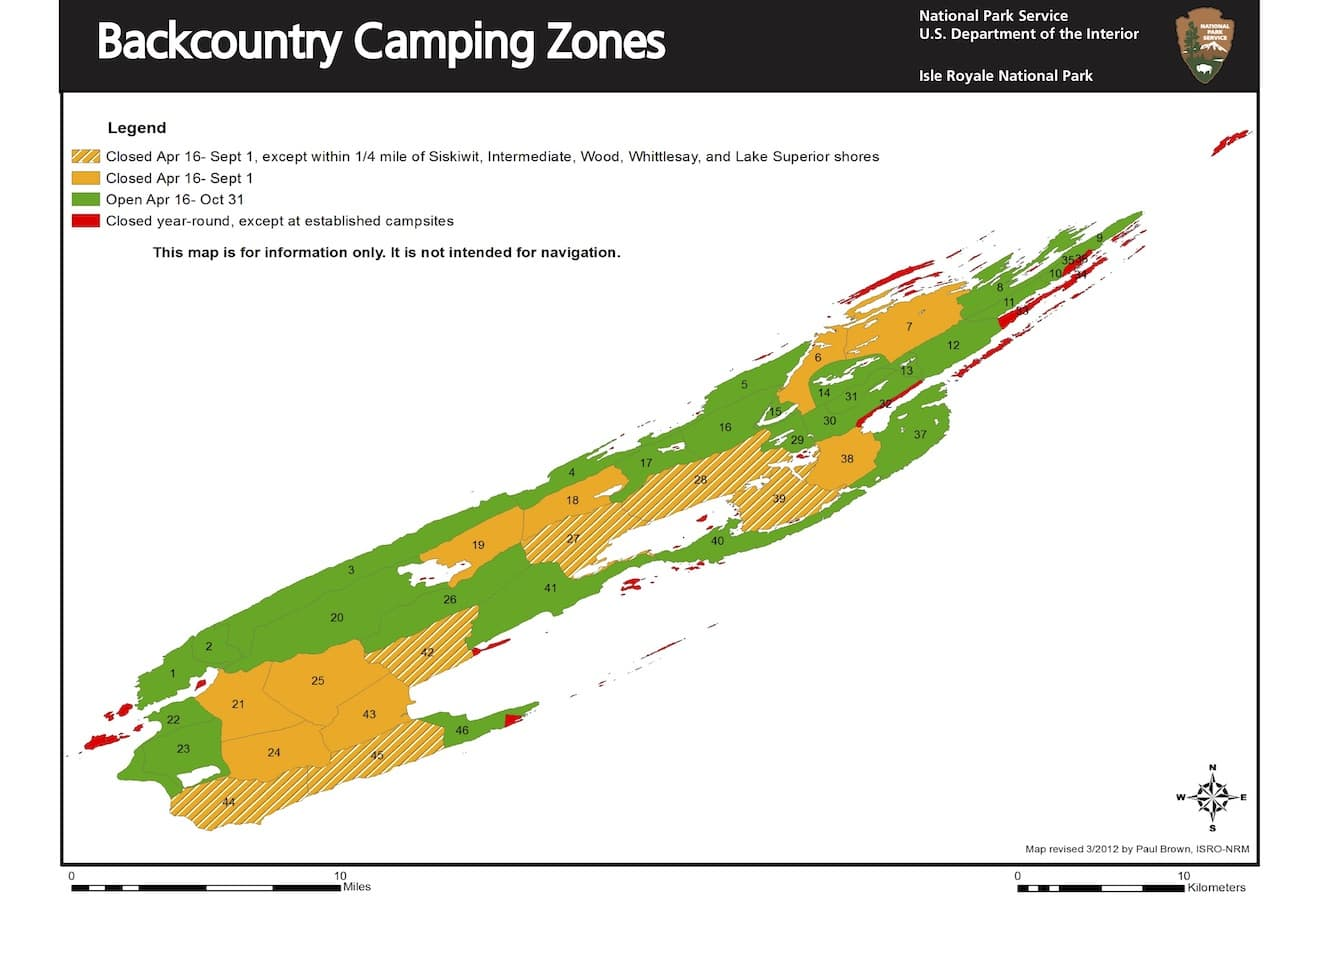 Preview image for Backcountry Camping Zones resource